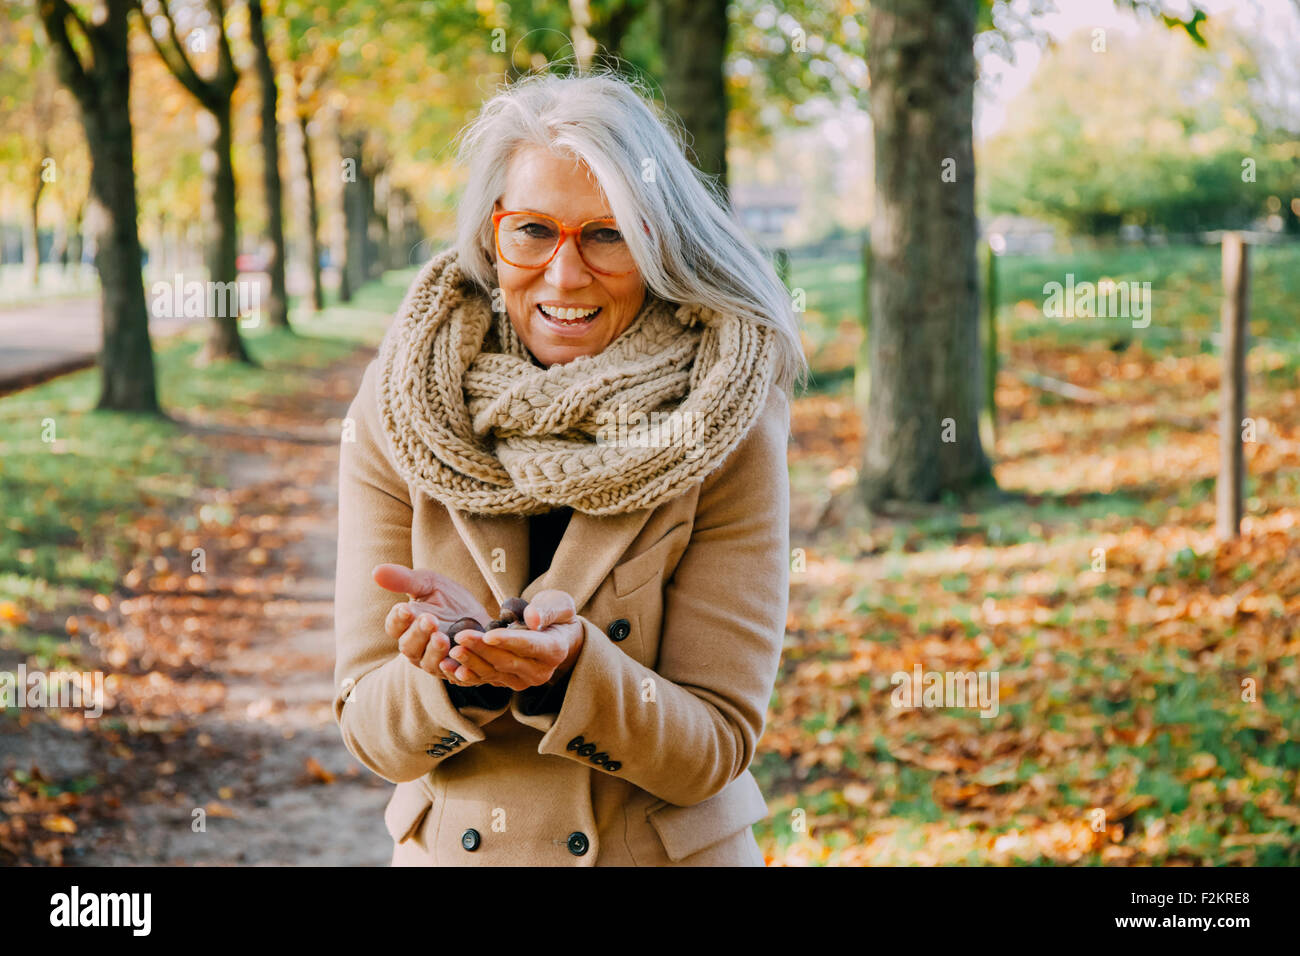 Portrait of woman wearing scarf holding something in her cupped hands - Stock Image